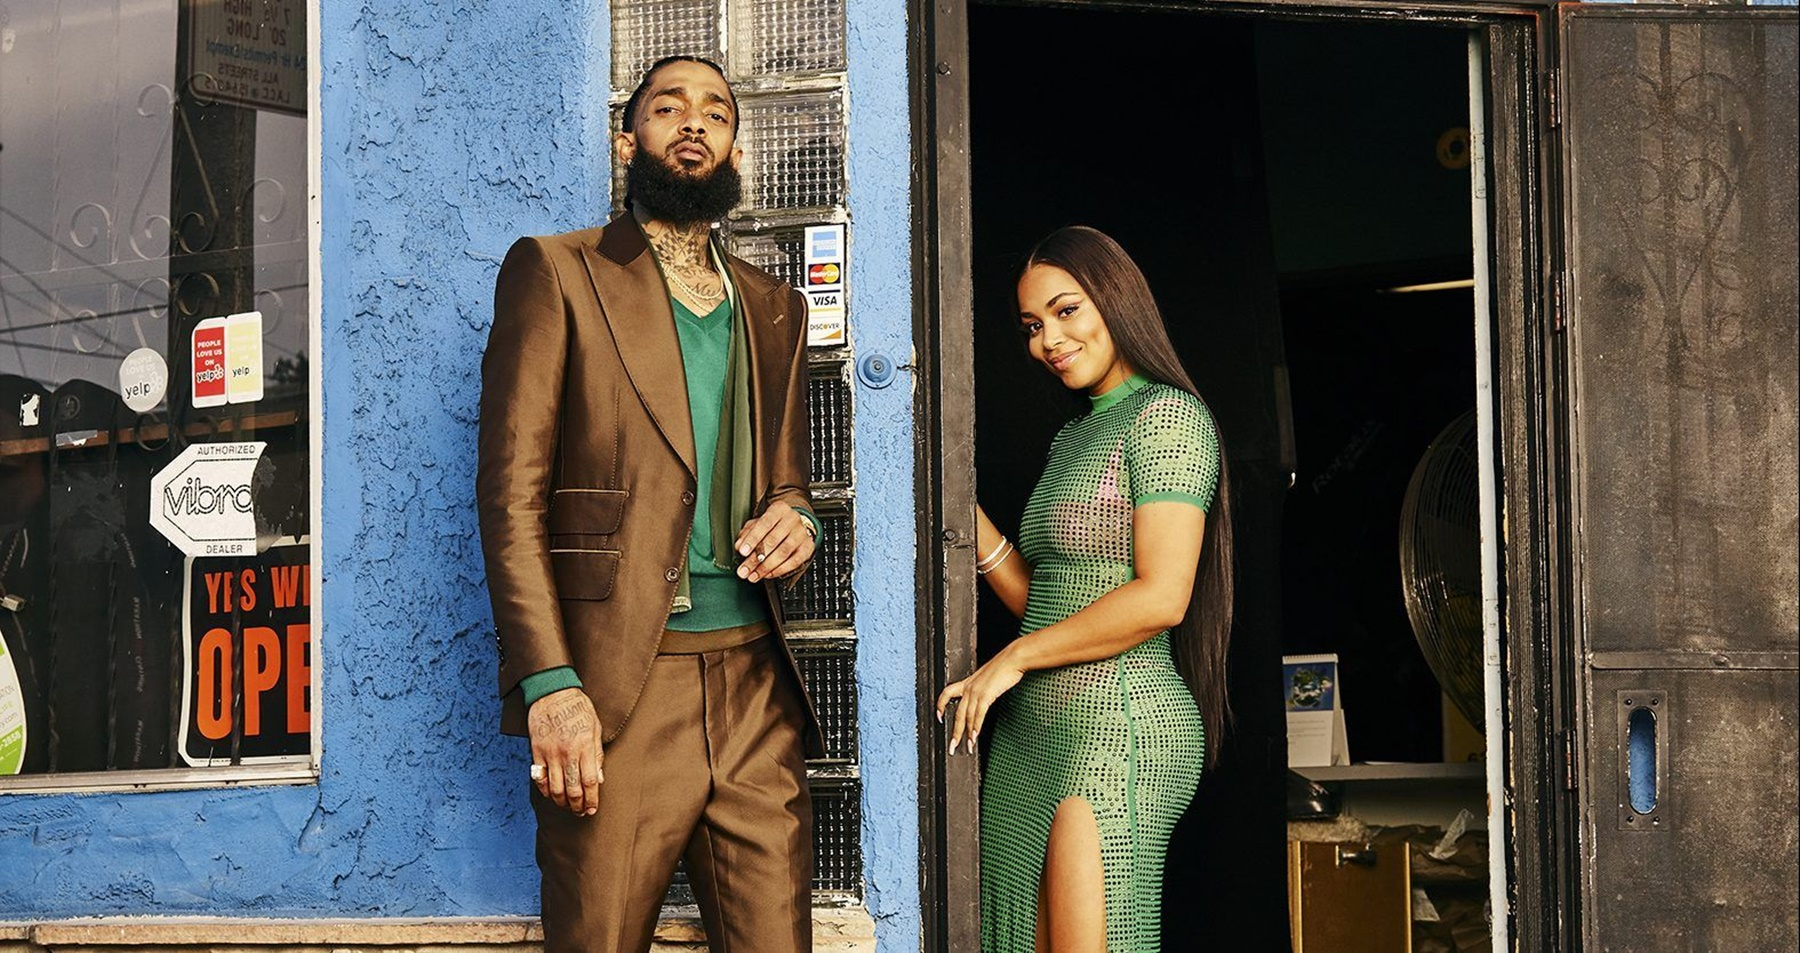 lauren-london-does-first-interview-after-nipsey-hussles-death-calls-him-a-king-and-talks-about-her-future-plans